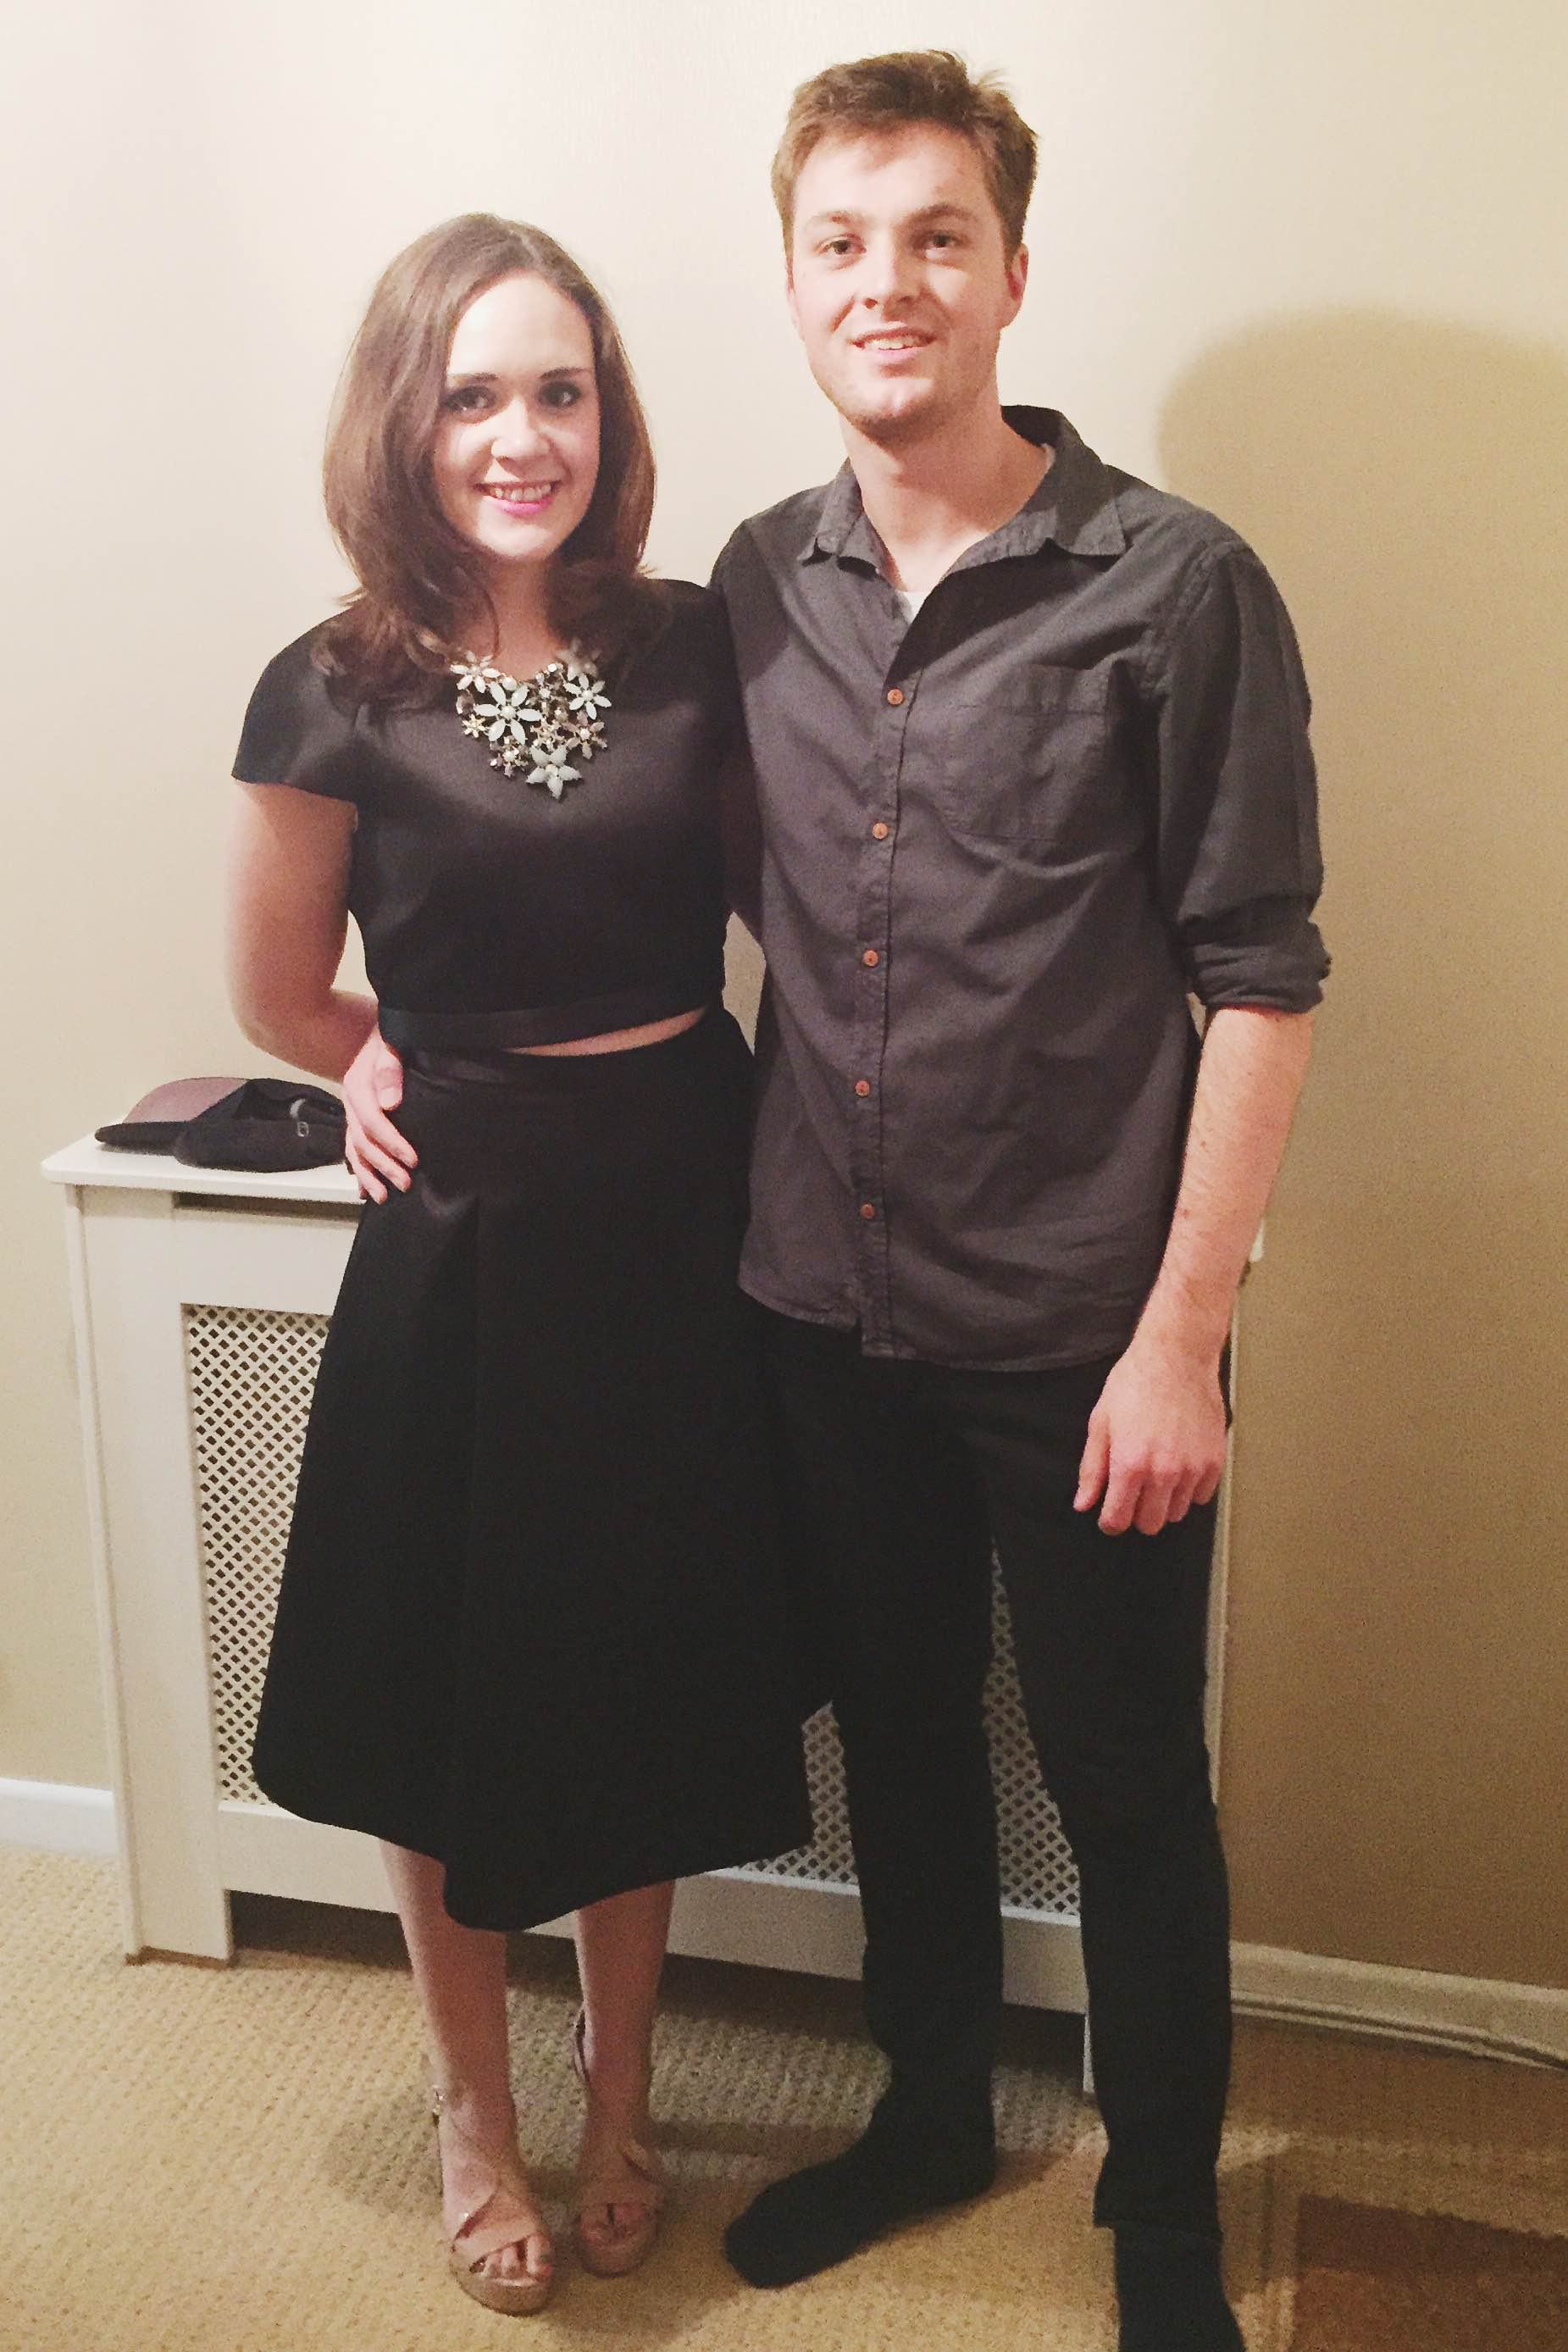 Tom & I dressed up for a family party